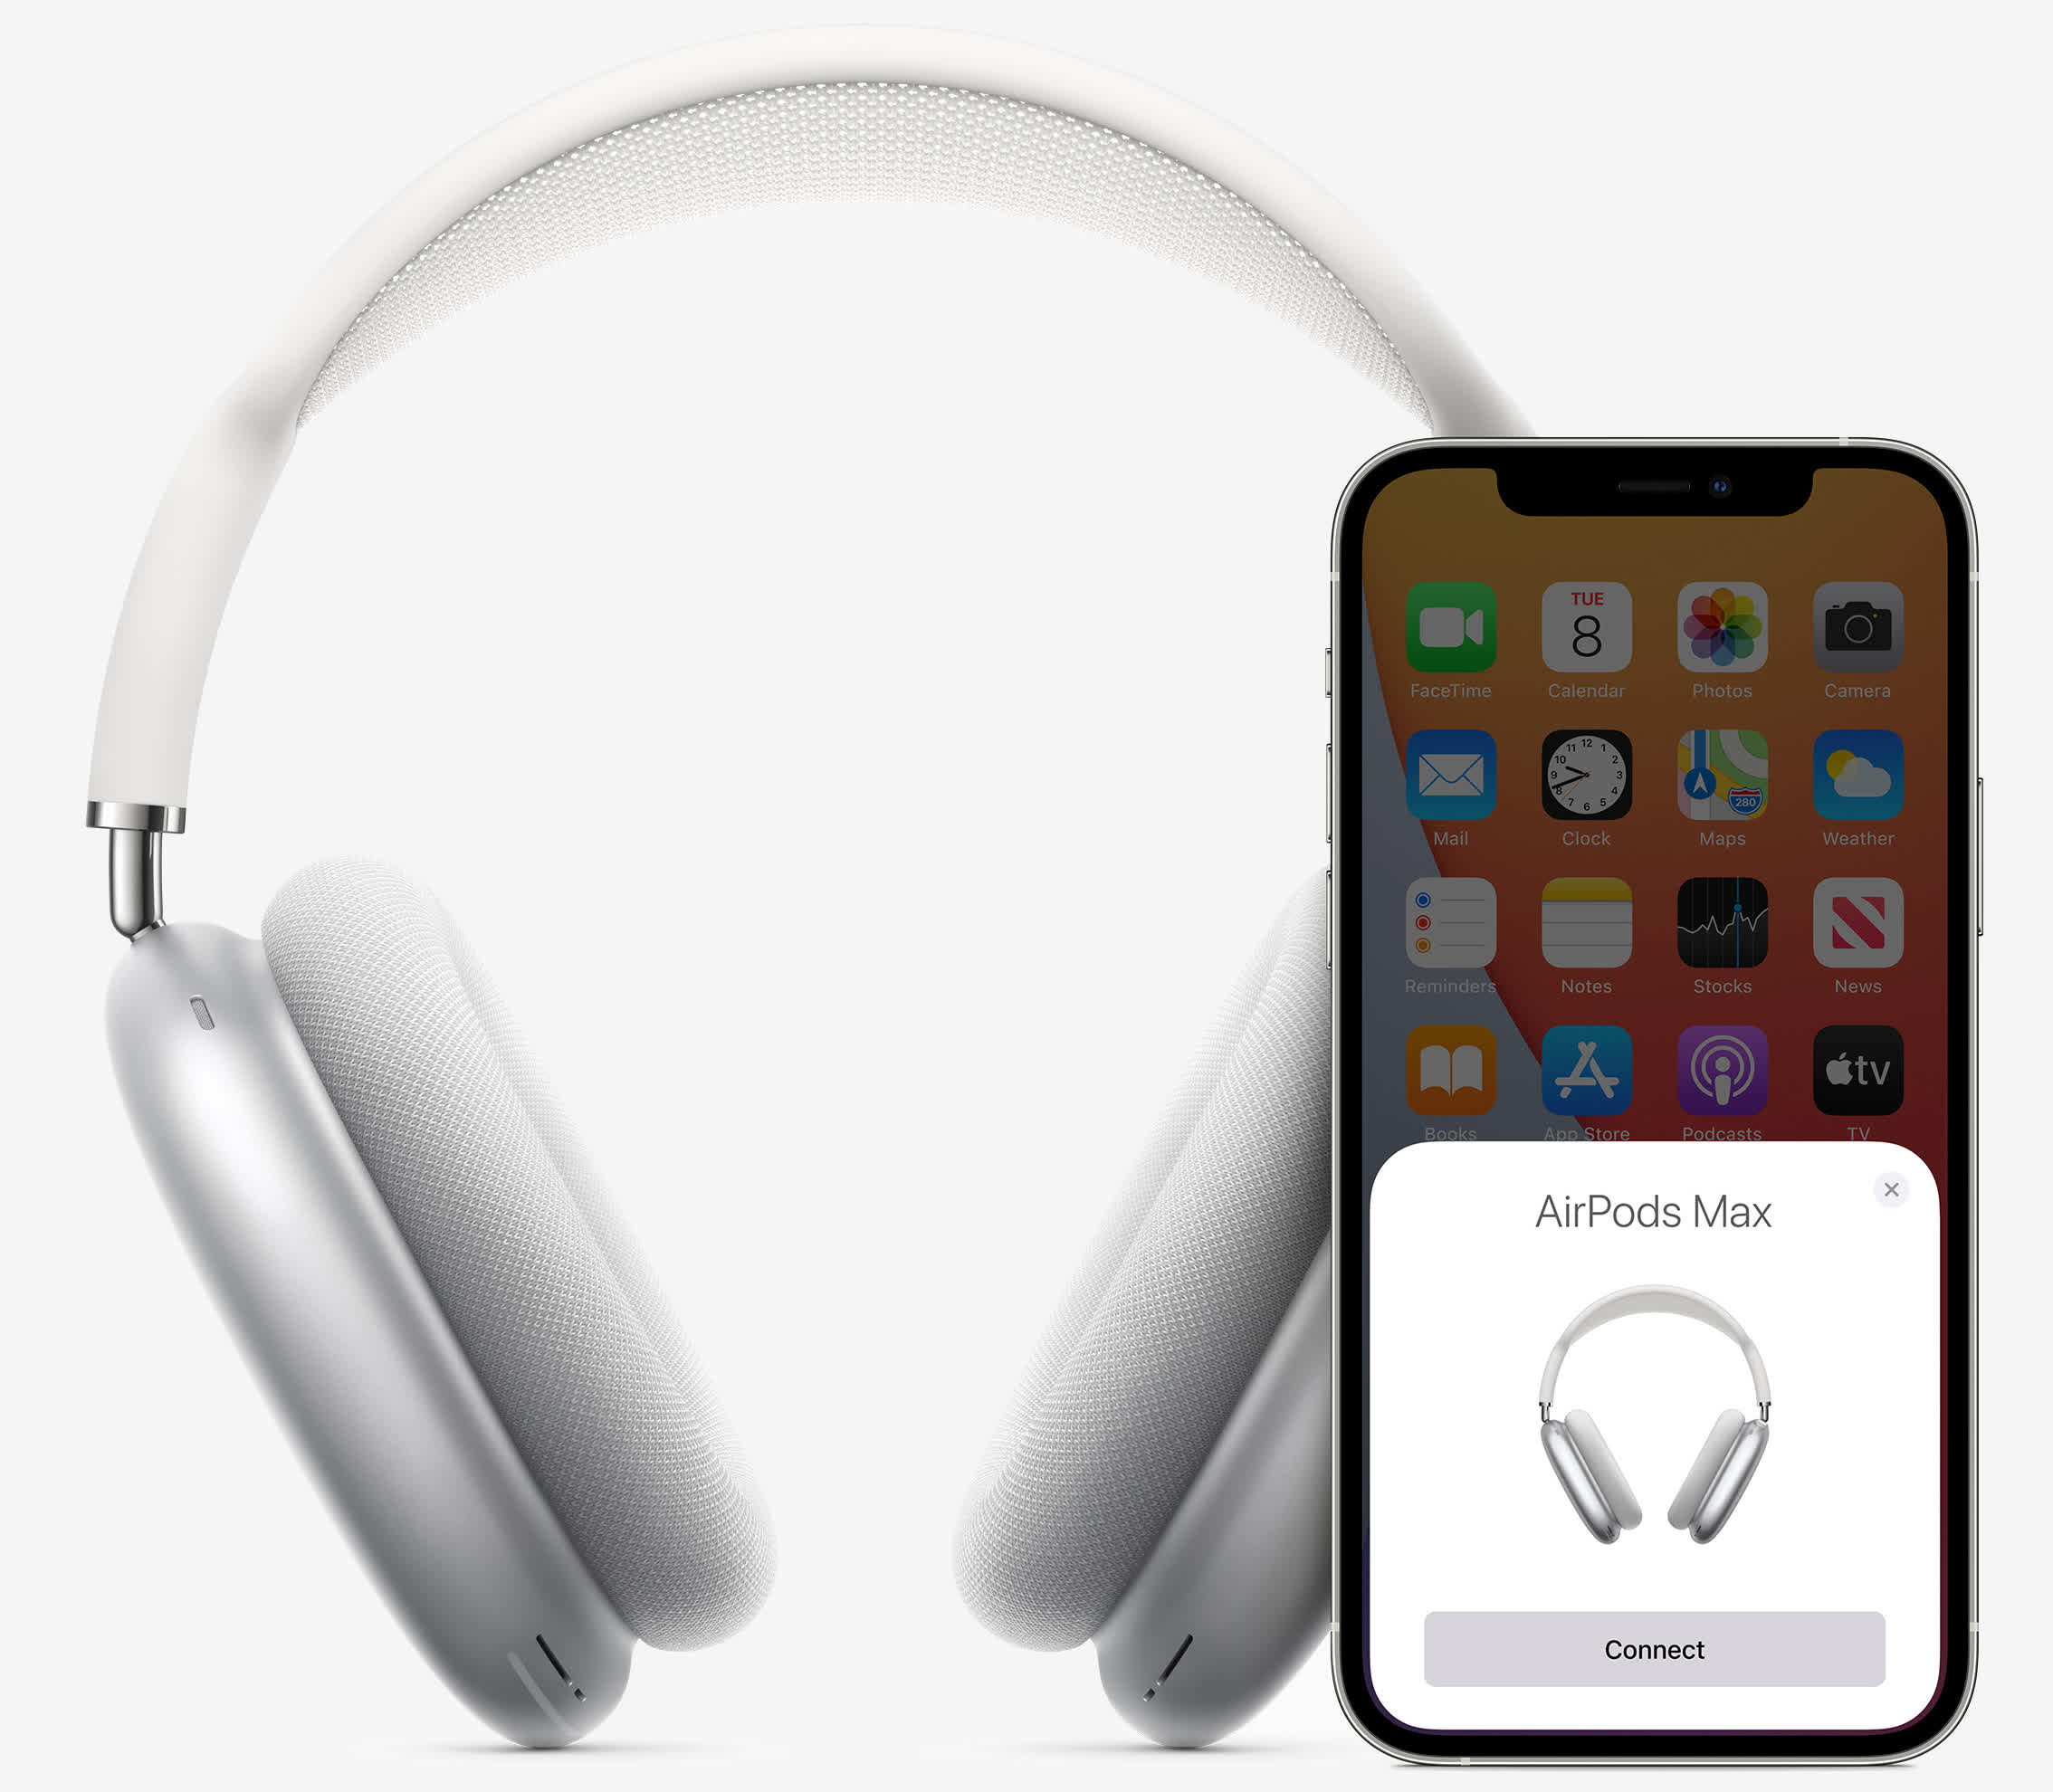 Apple announces AirPods Max over-ear headphones for $549